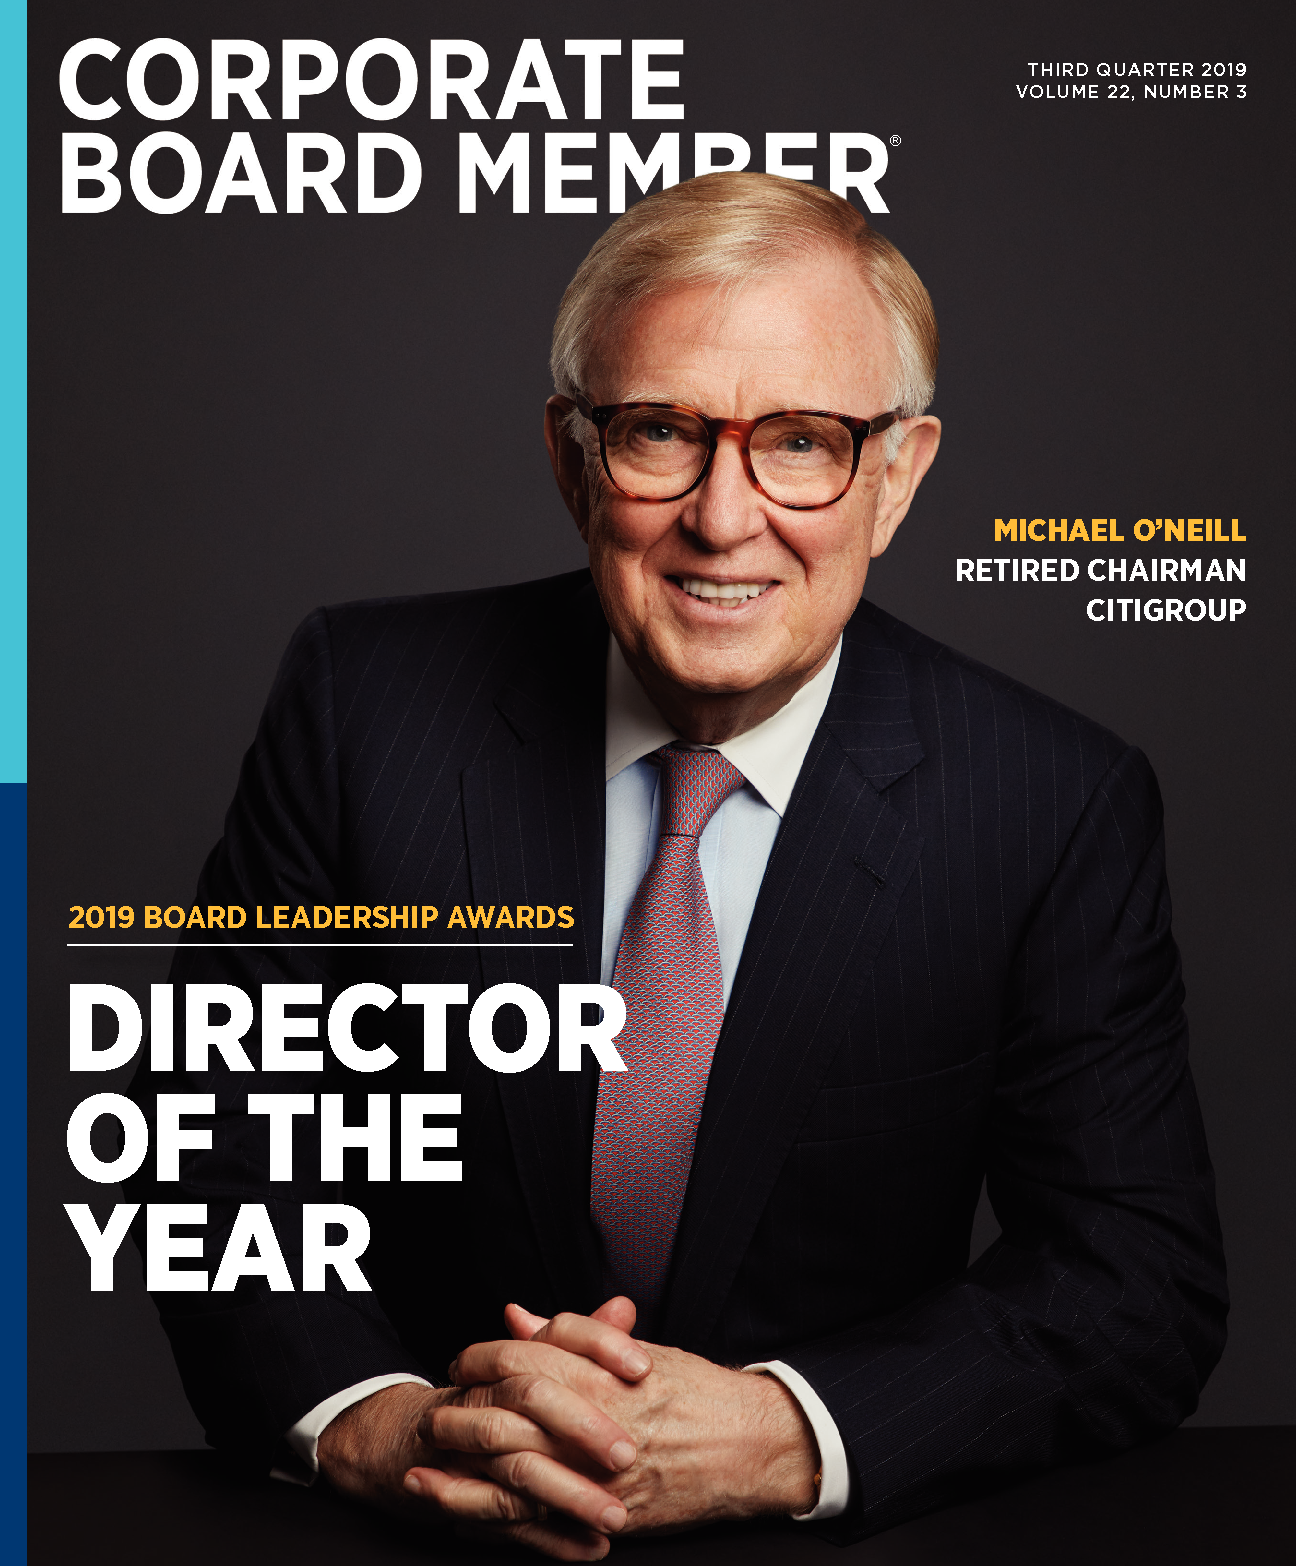 How Should Boards Handle Involuntary CEO Retirement? (PDF)